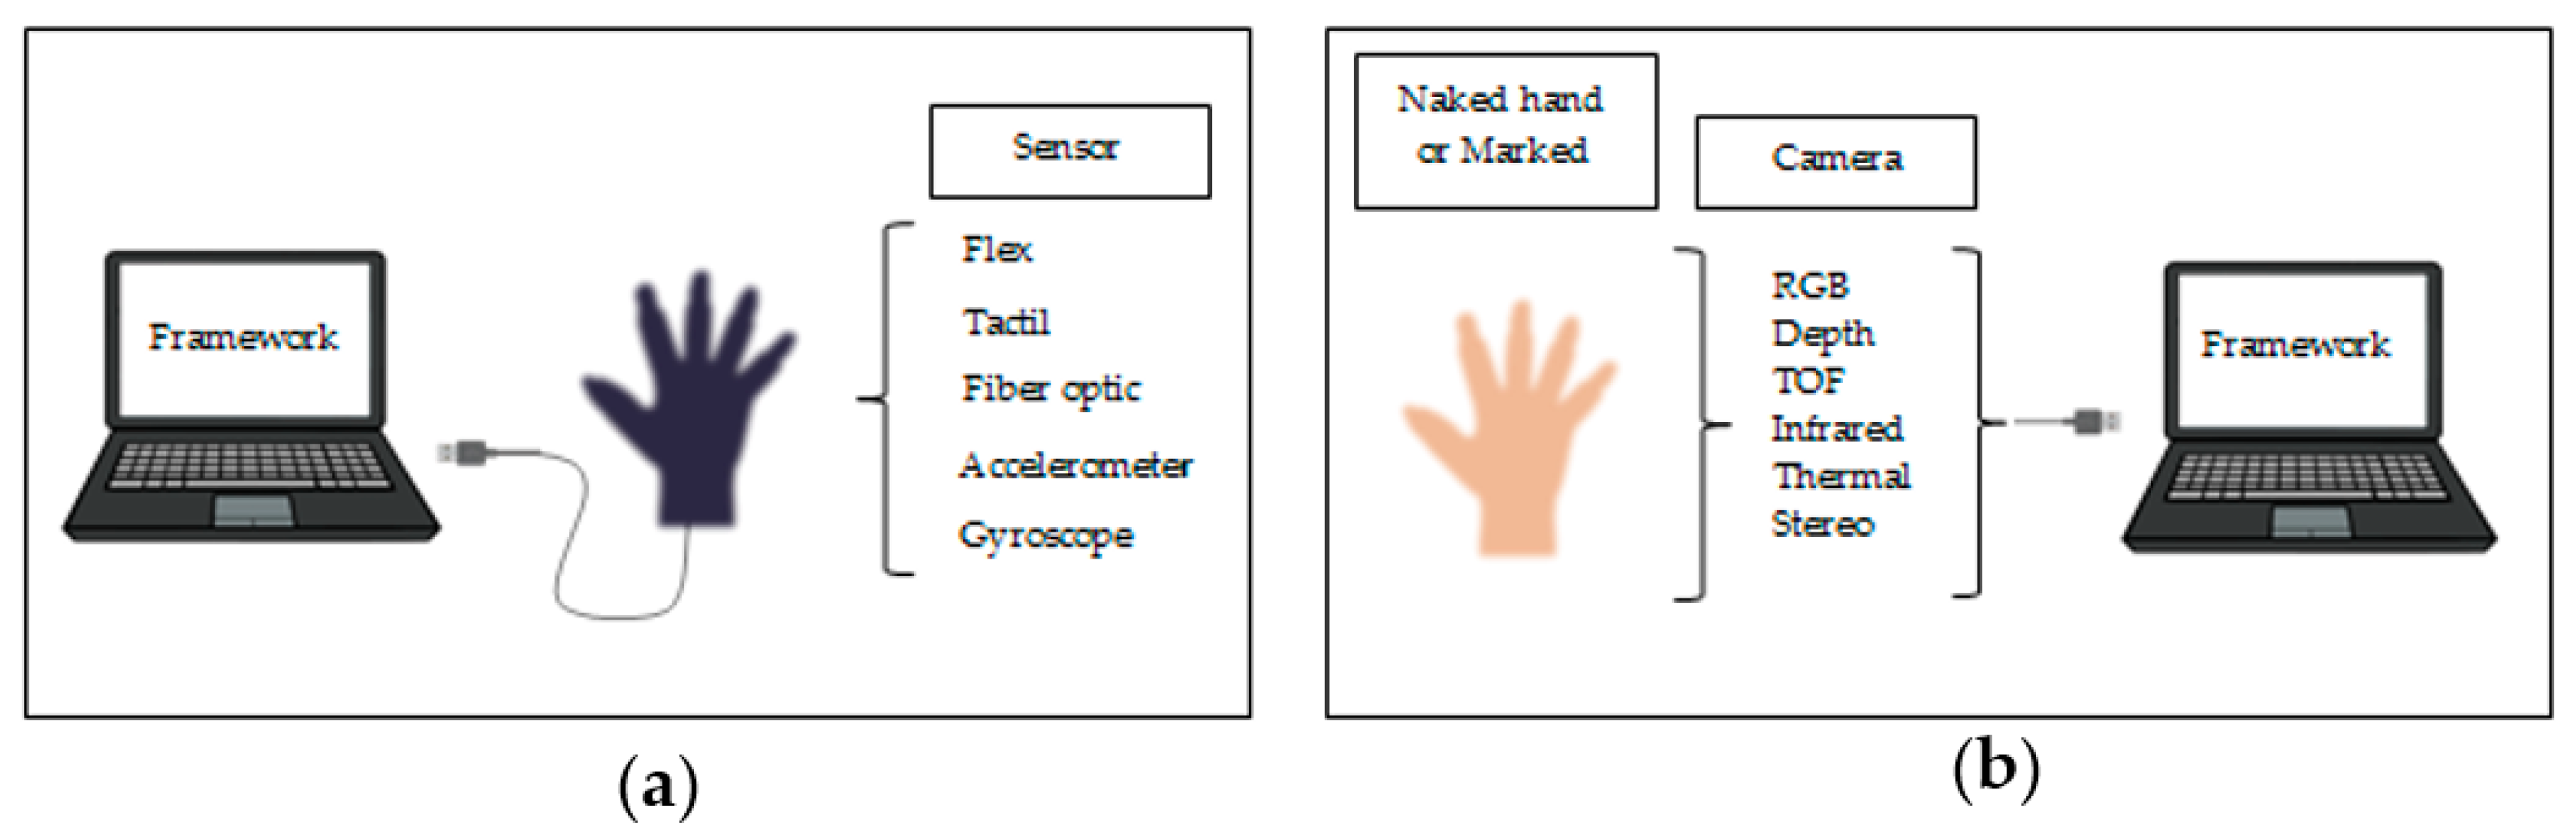 J Imaging Free Full Text Hand Gesture Recognition Based On Computer Vision A Review Of Techniques Html